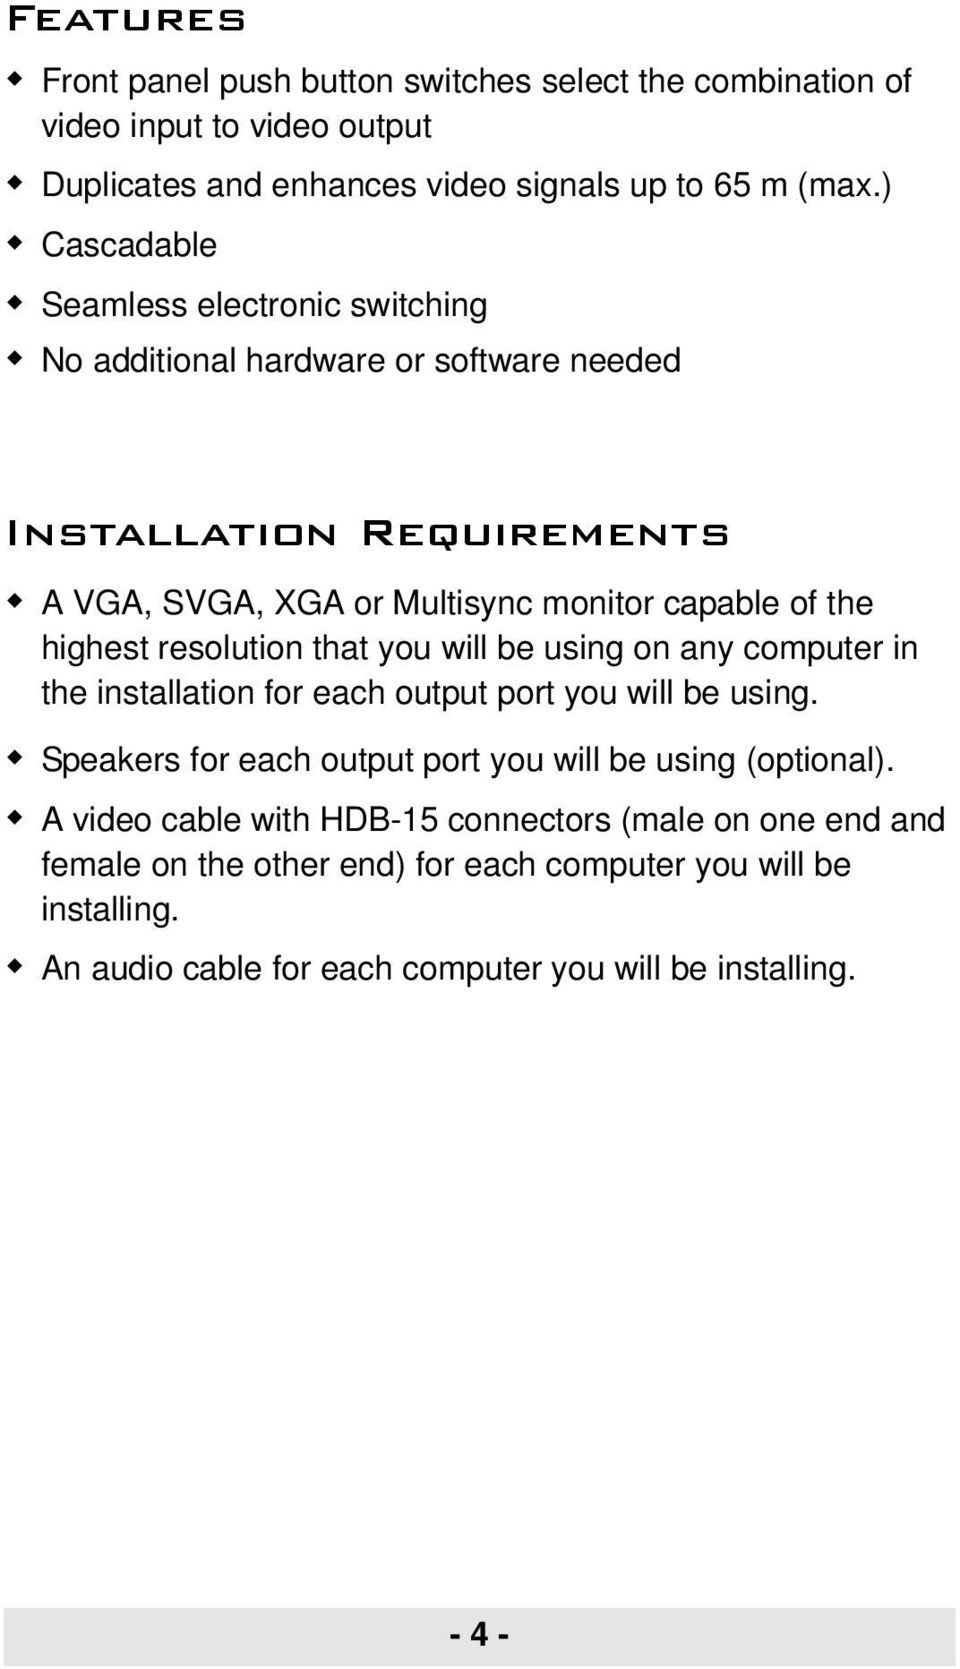 highest resolution that you will be using on any computer in the installation for each output port you will be using.